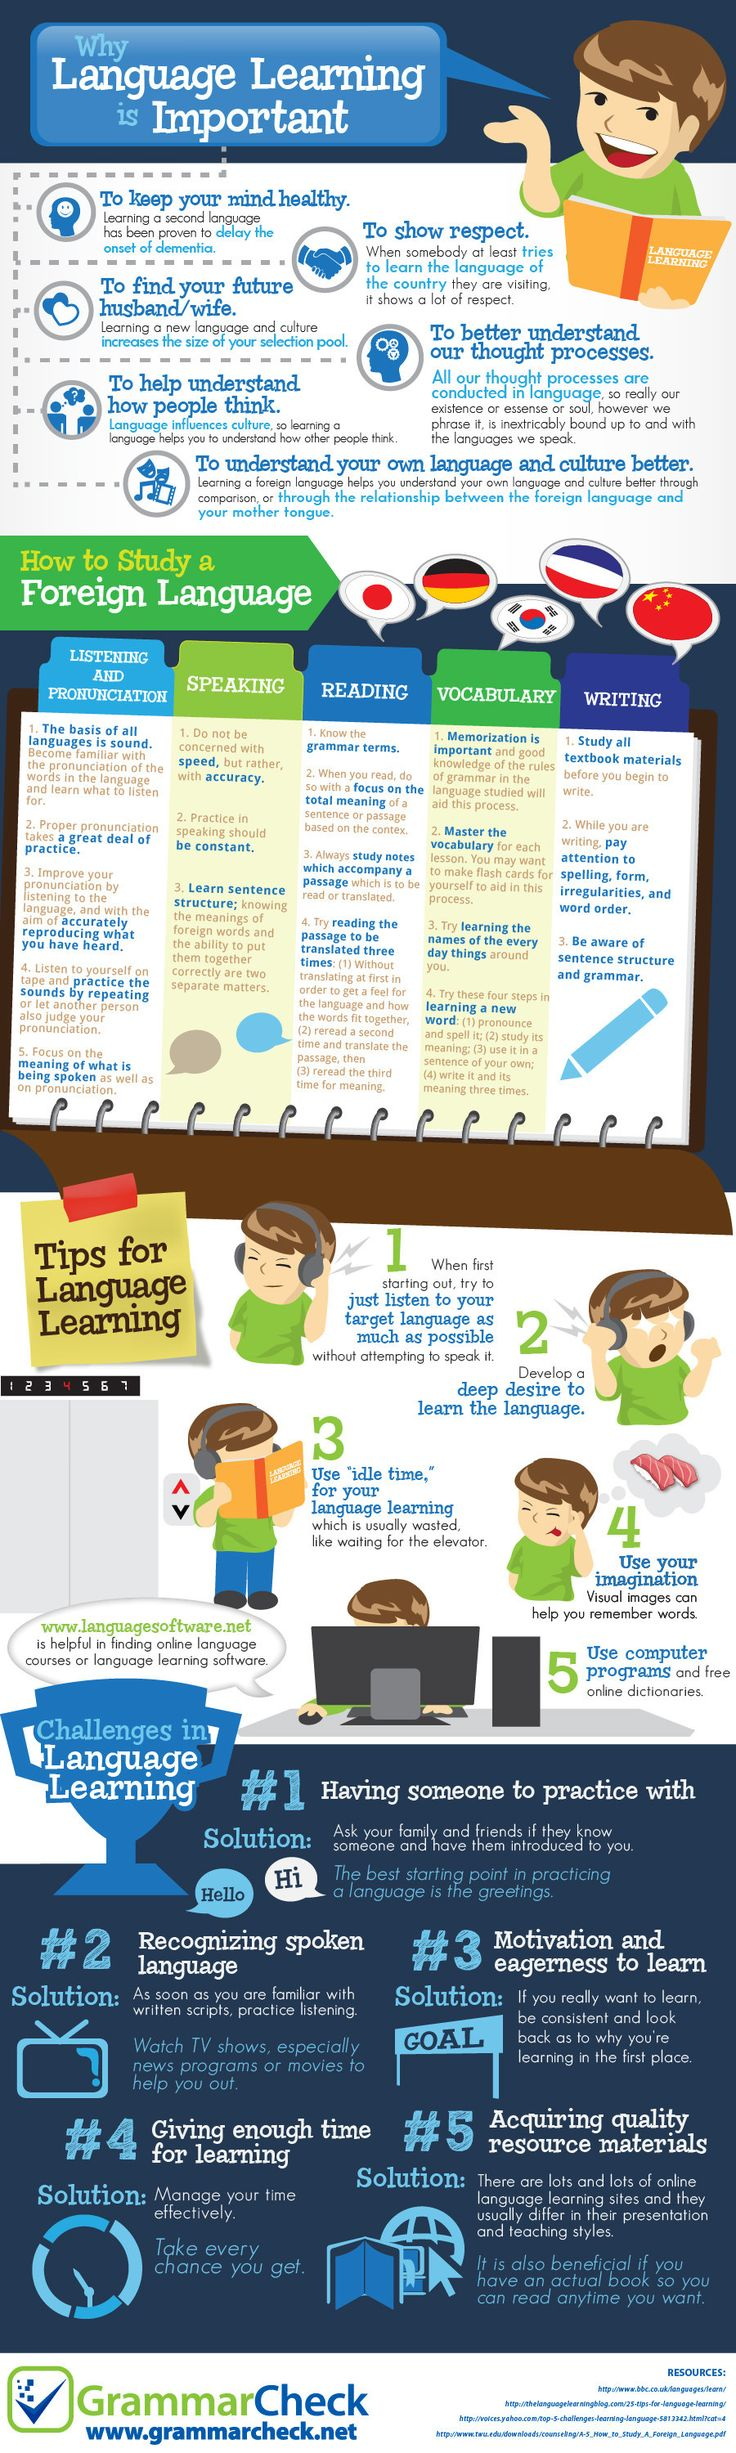 Why Language Learning is Important #infographic ~ Visualistan